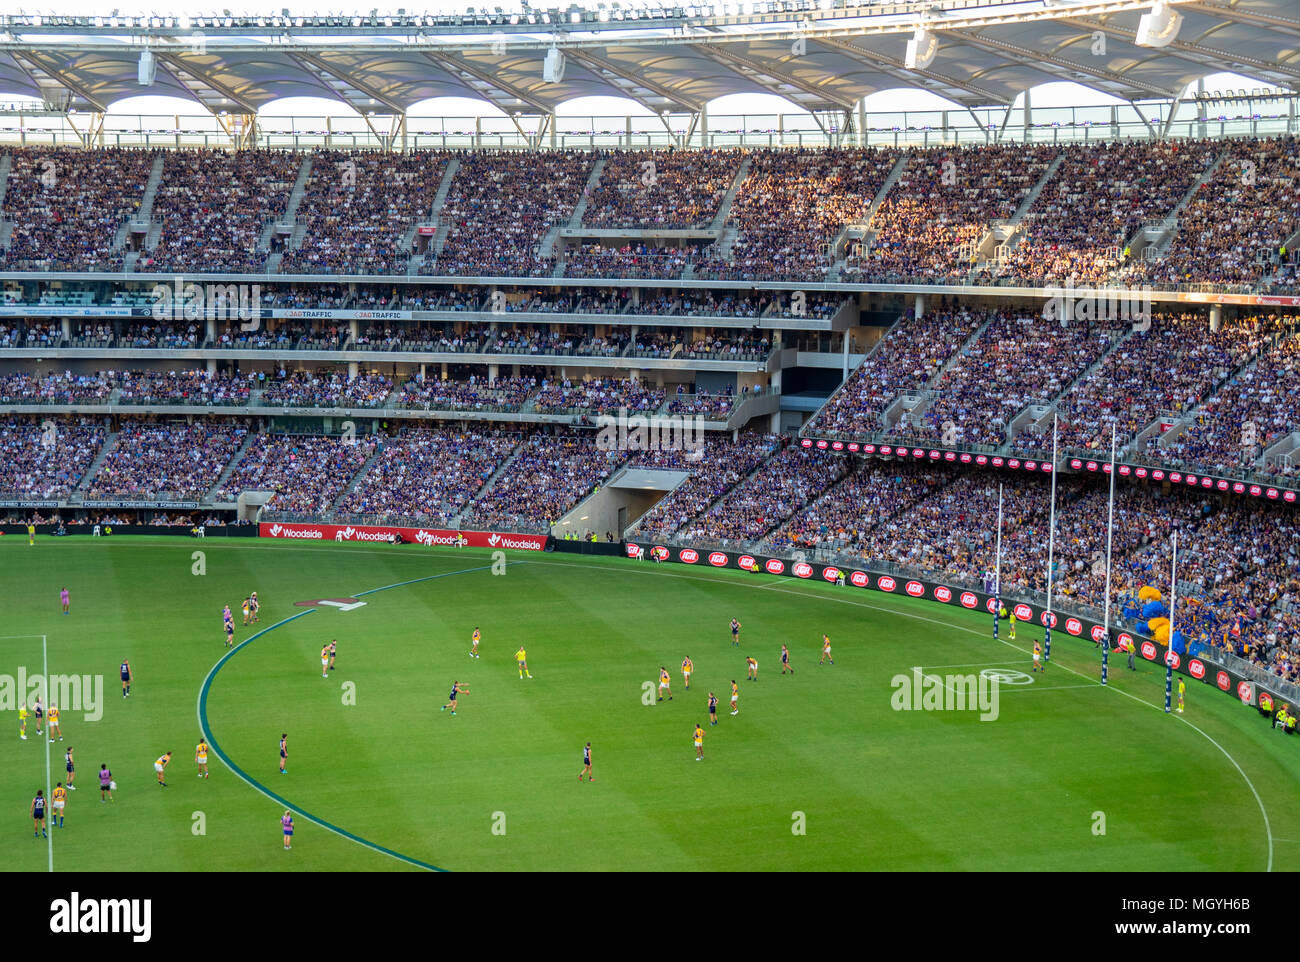 afl-teams-fremantle-dockers-and-west-coast-eagles-playing-their-australian-rules-football-first-derby-at-optus-stadium-perth-wa-australia-MGYH6B.jpg